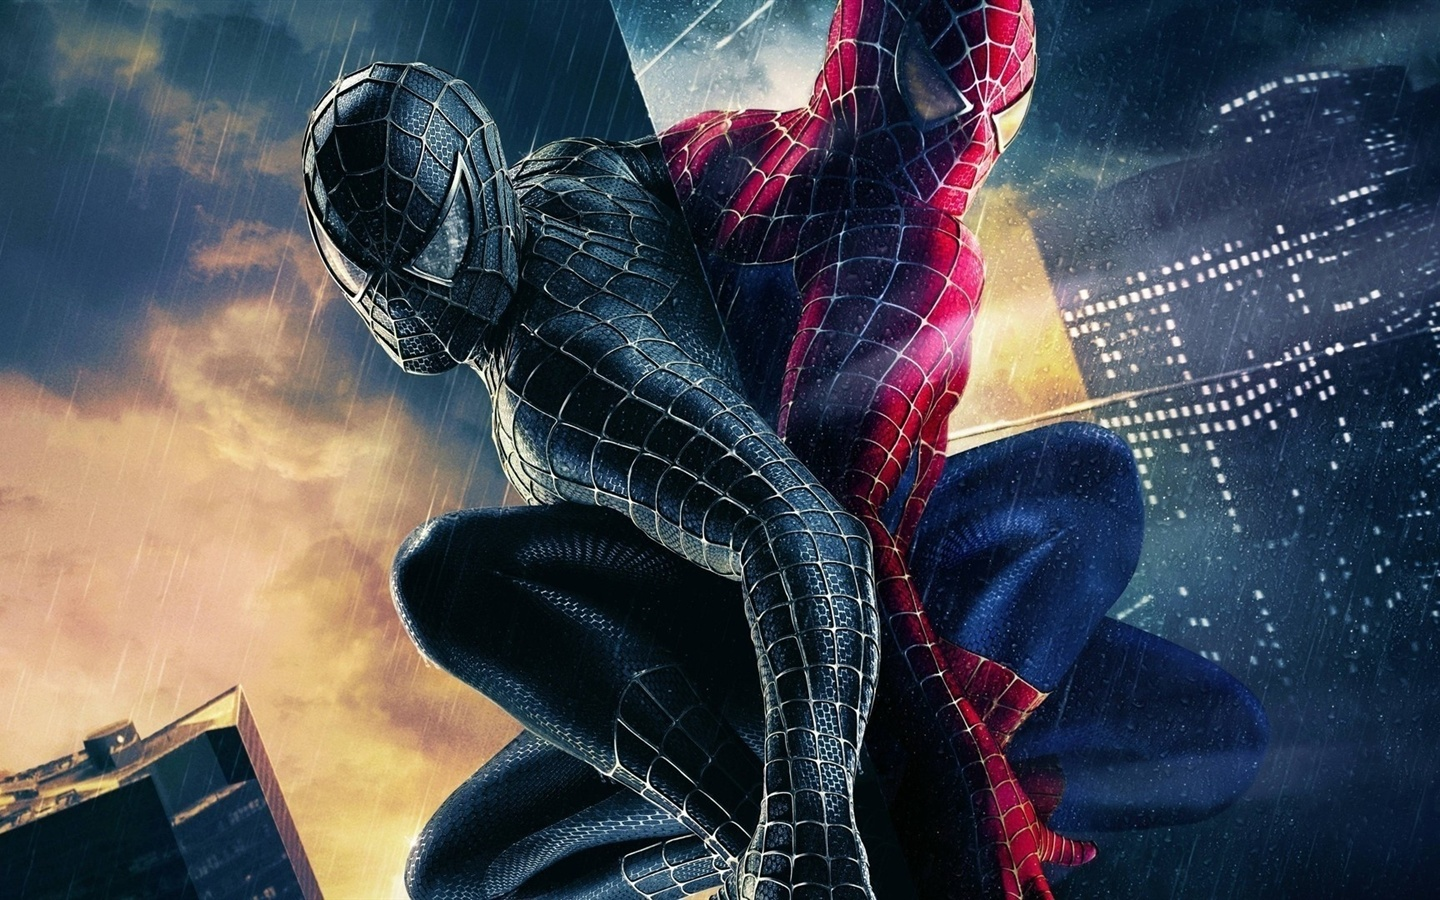 Two Spider-Man wallpaper - 1440x900